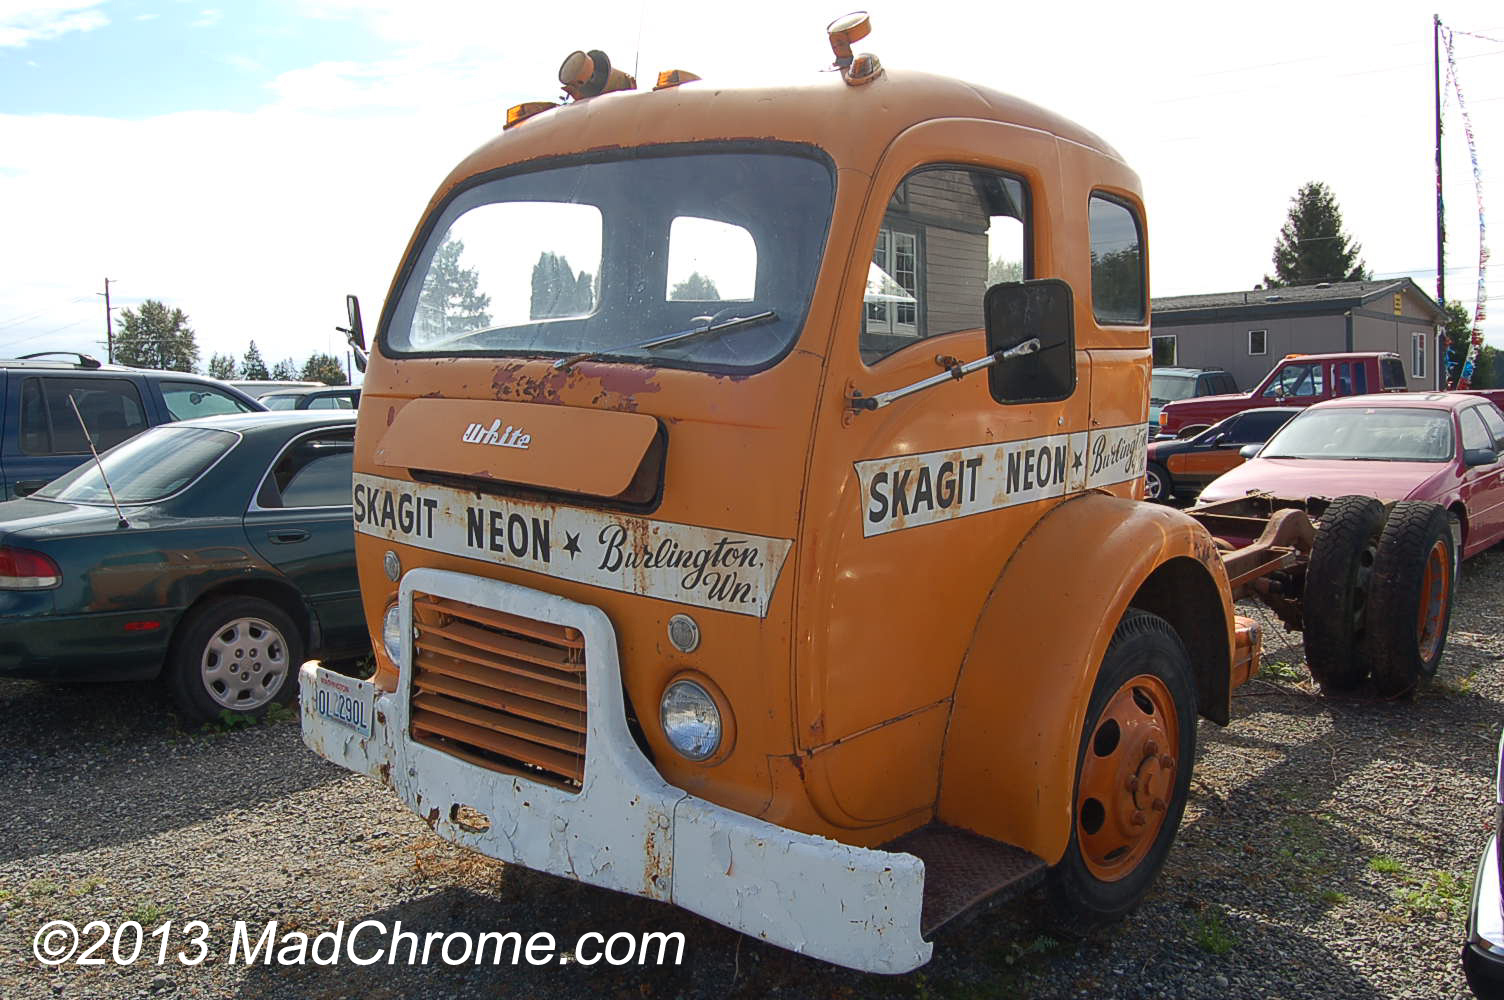 Foreign Used Car Parts Wisconsin